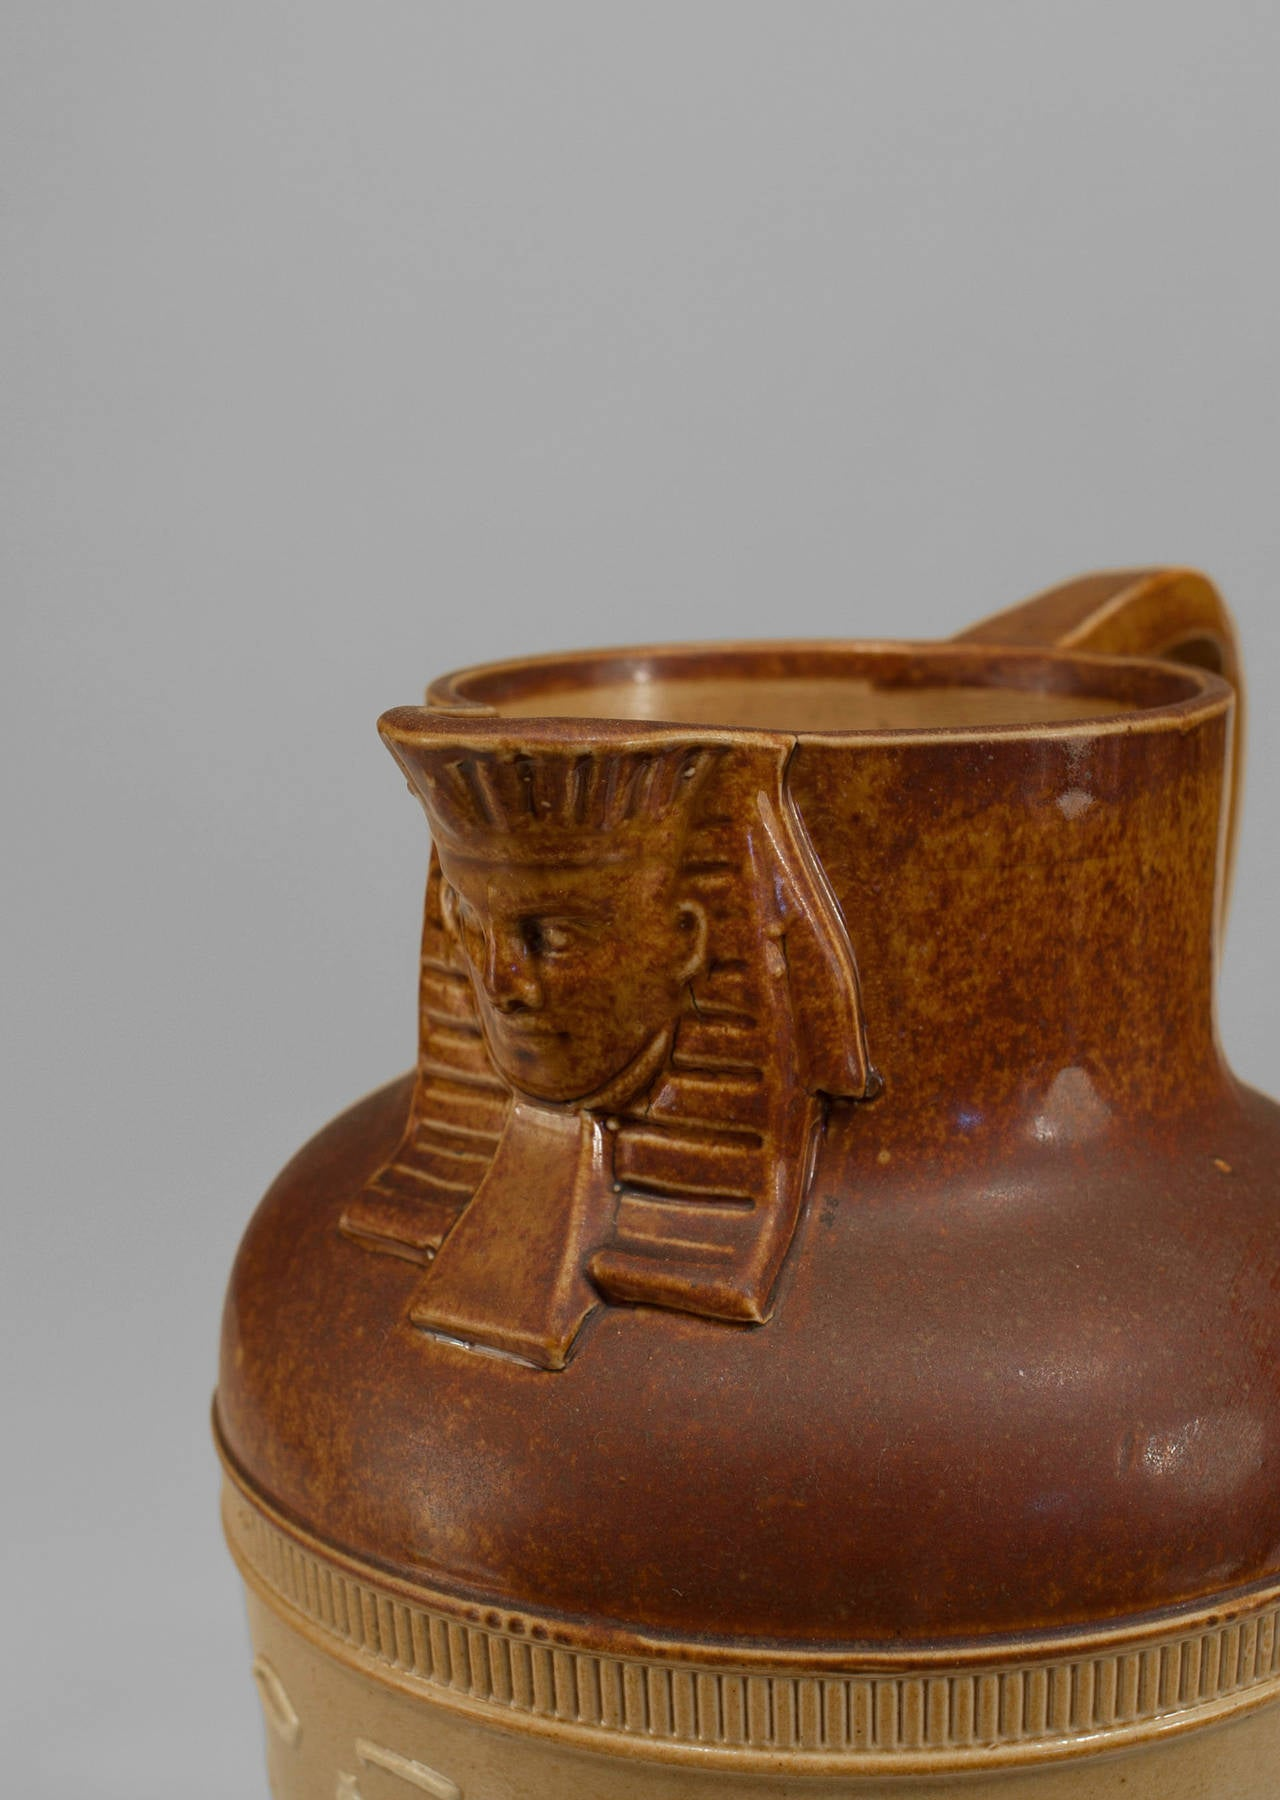 1920's English small brown pitcher with an pharaoh-headed spout sphinx and beige and white classical figures in relief. Impressed